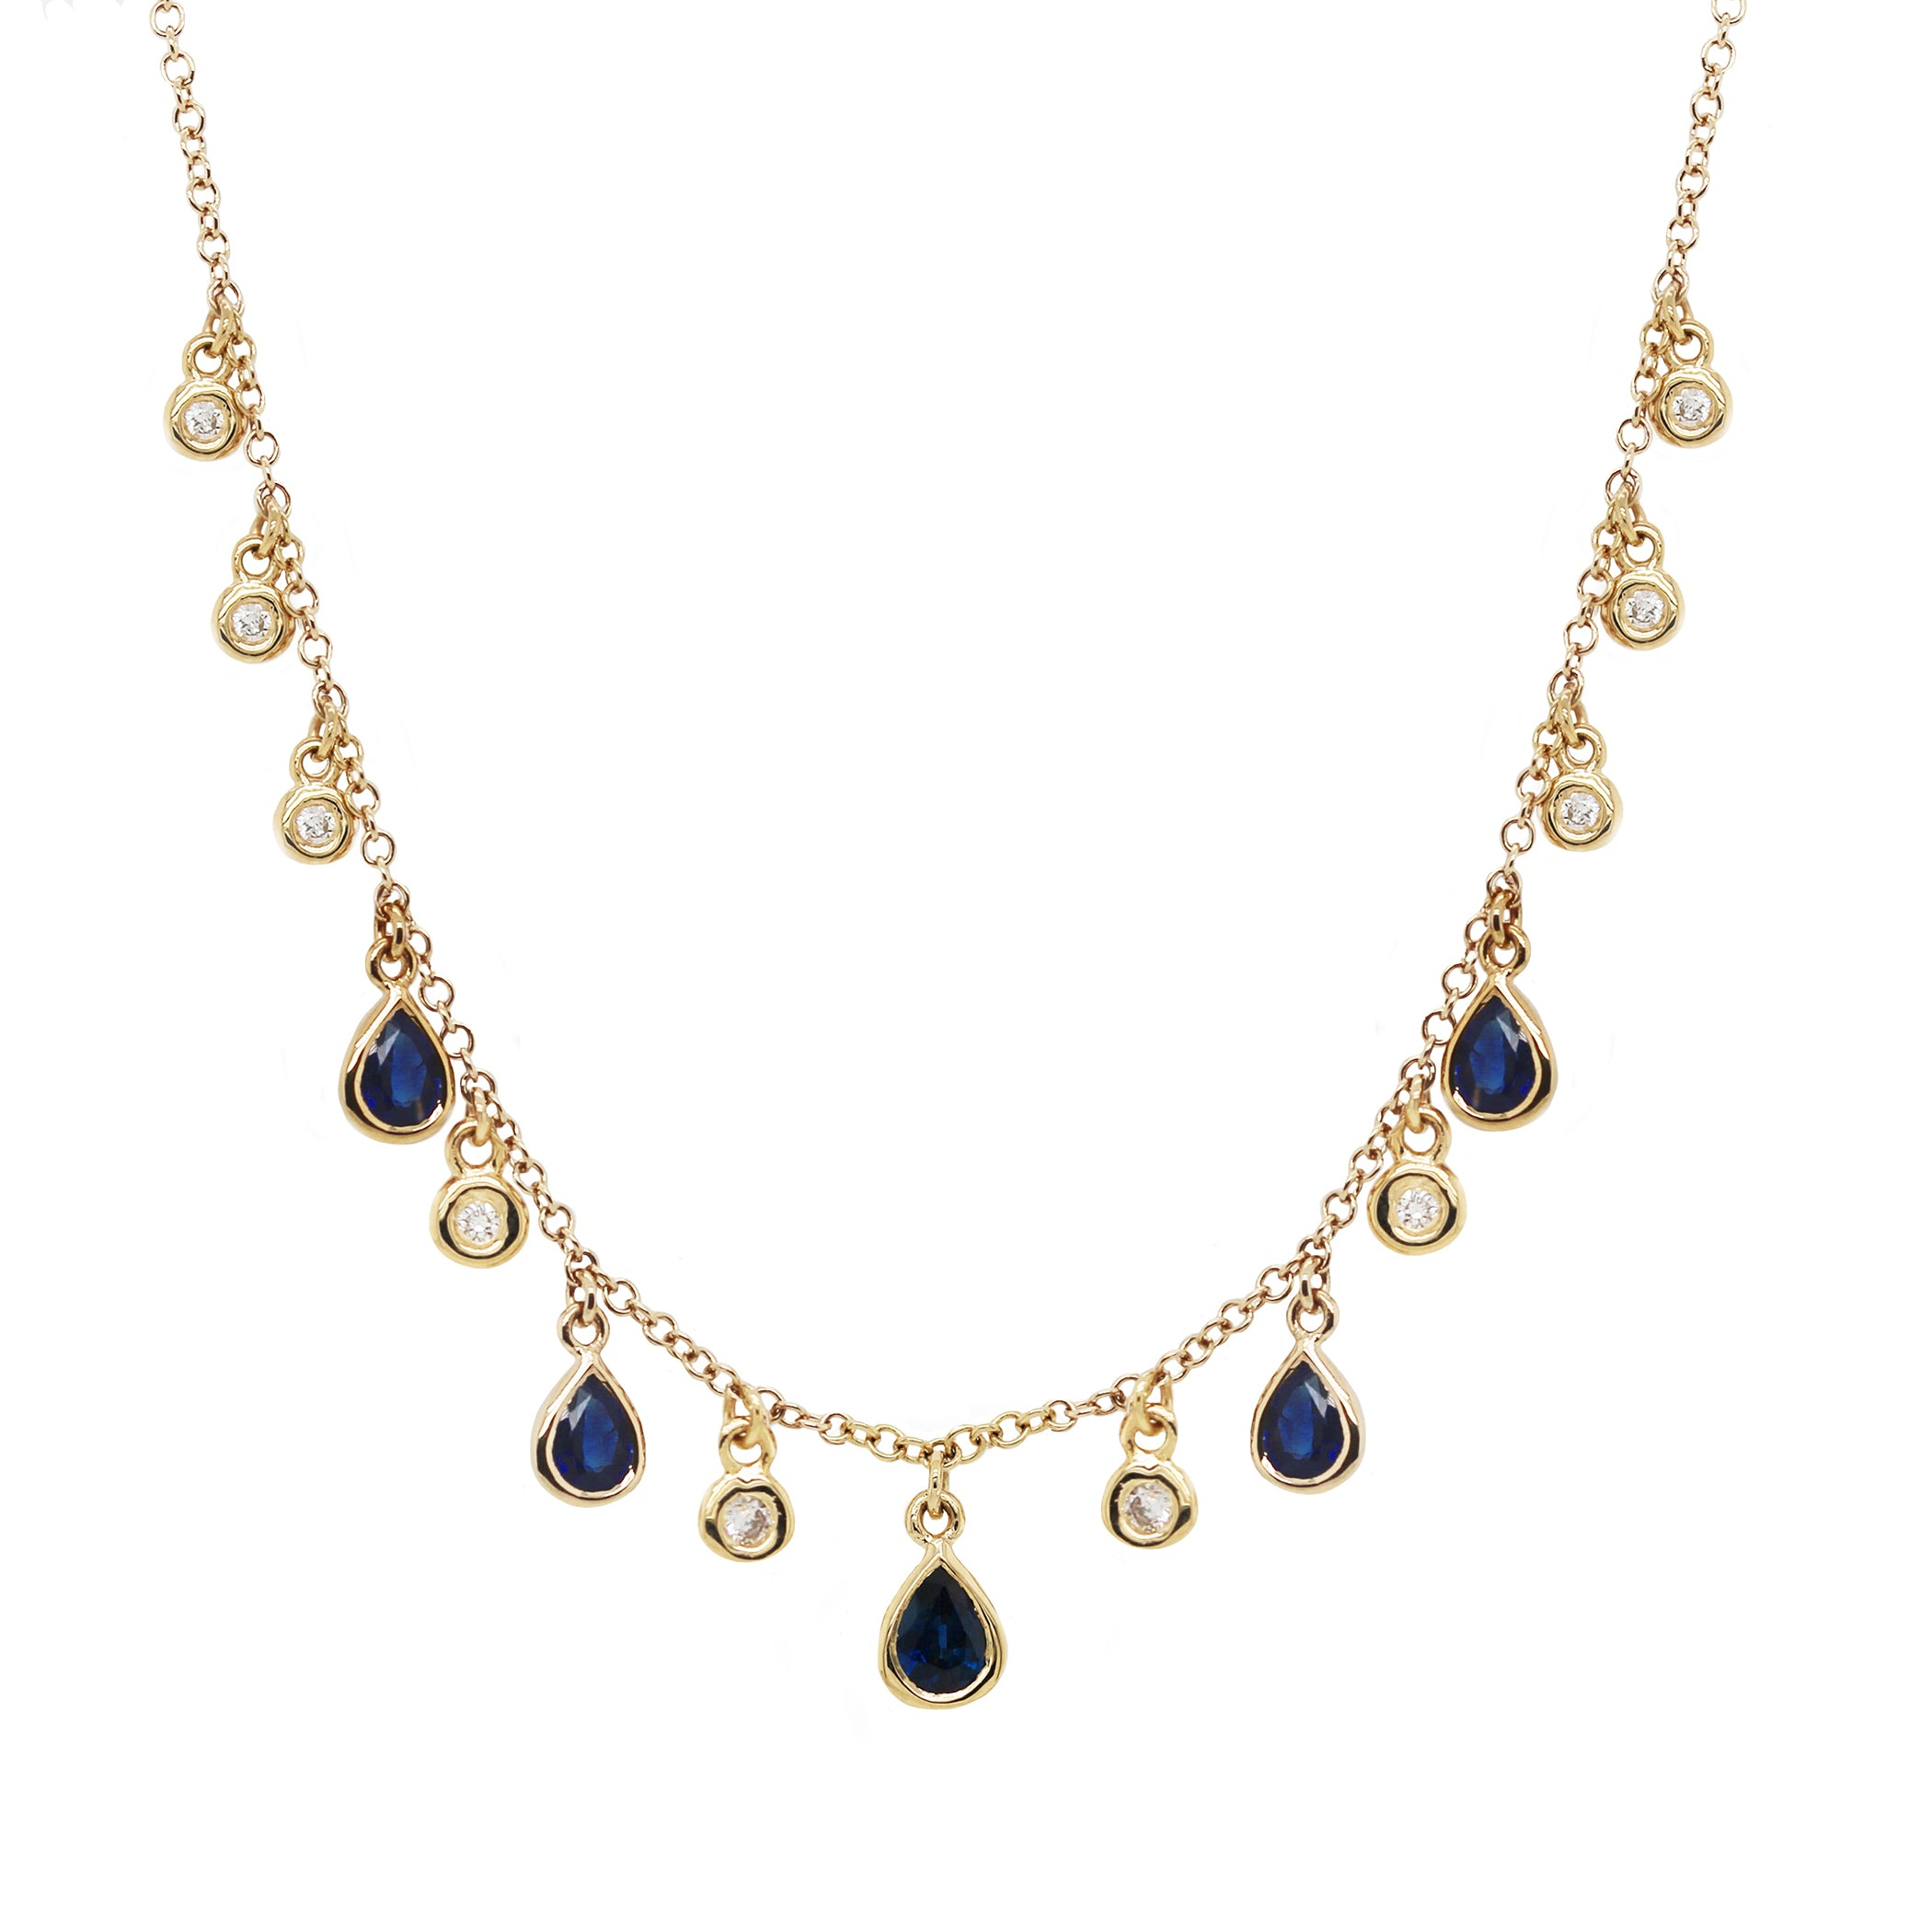 14K FIVE DANGLING PEAR SHAPE SAPPHIRES WITH DANGLING DIAMONDS NECKLACE